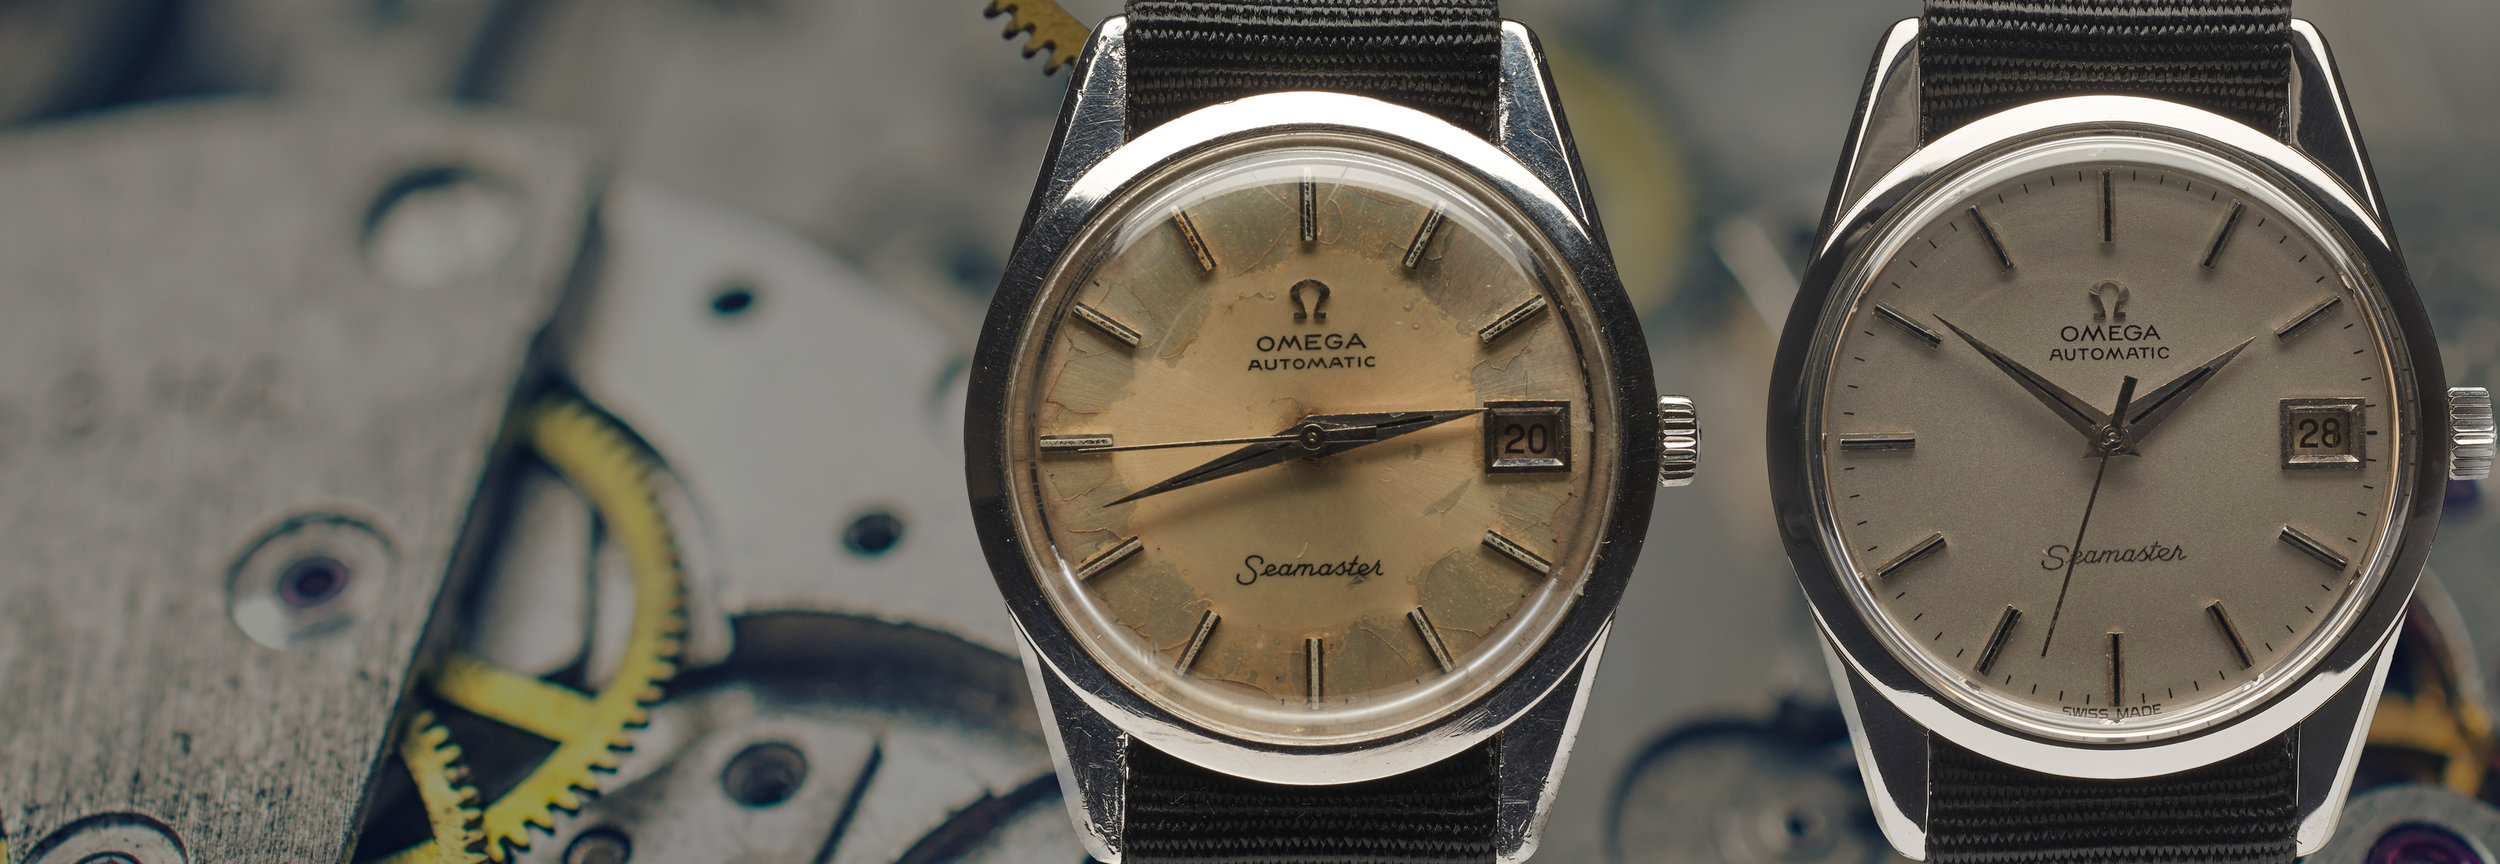 OMEGA CERTIFIED - OMEGA WATCH REPAIR CENTREOFFERING A COMPREHENSIVE PRICEPLAN & 5* SERVICE